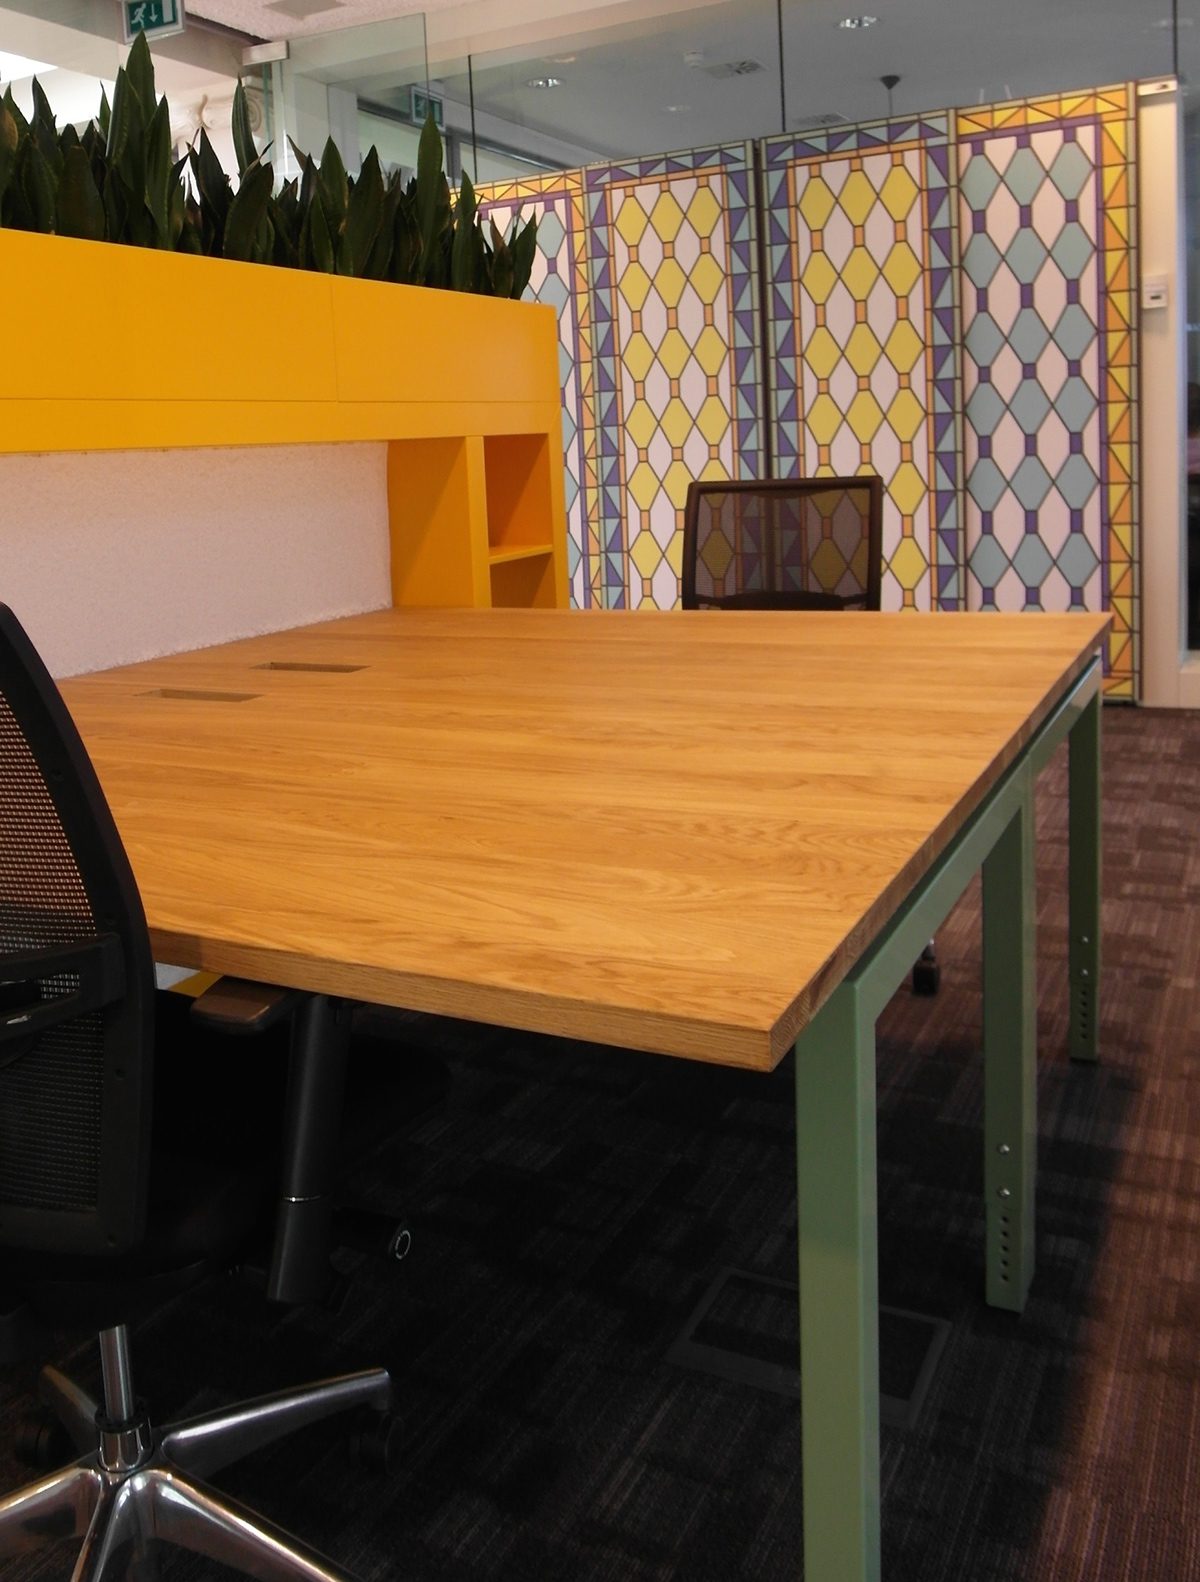 Wortell interior design  Office wallpaper new tables color re use of materials